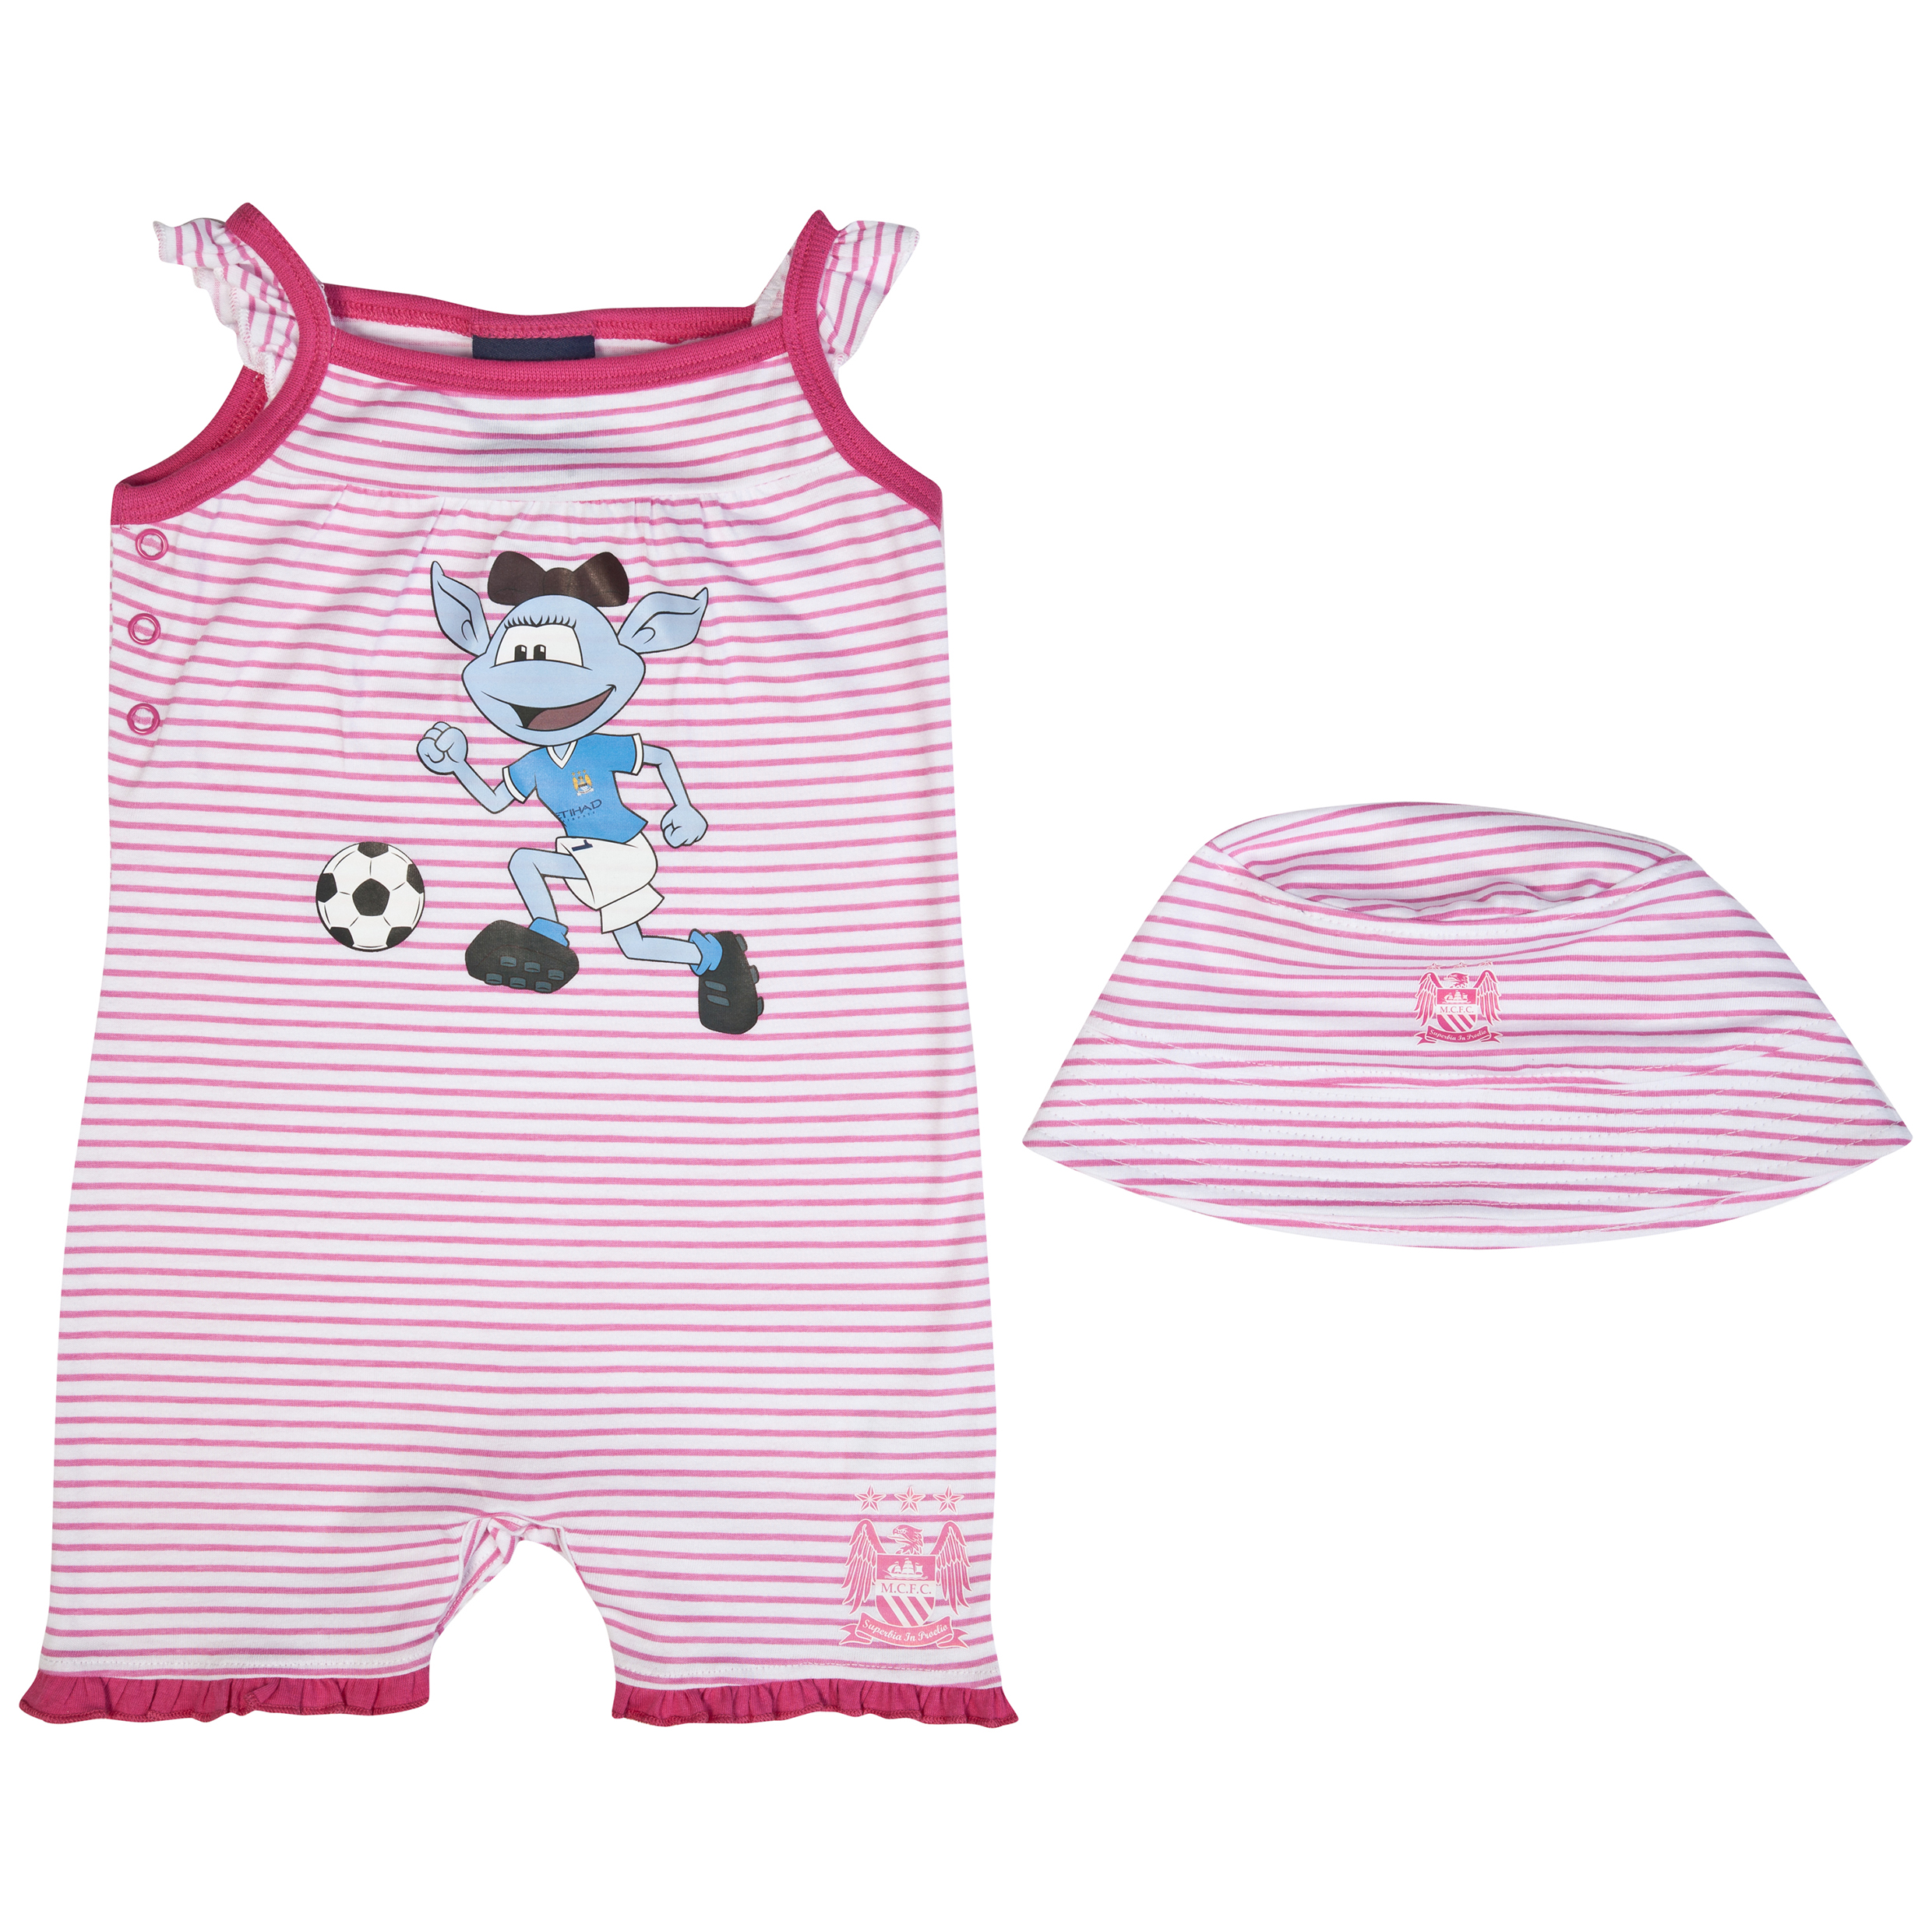 Manchester City Moonbeam Romper and Hat - Pink/White - Baby